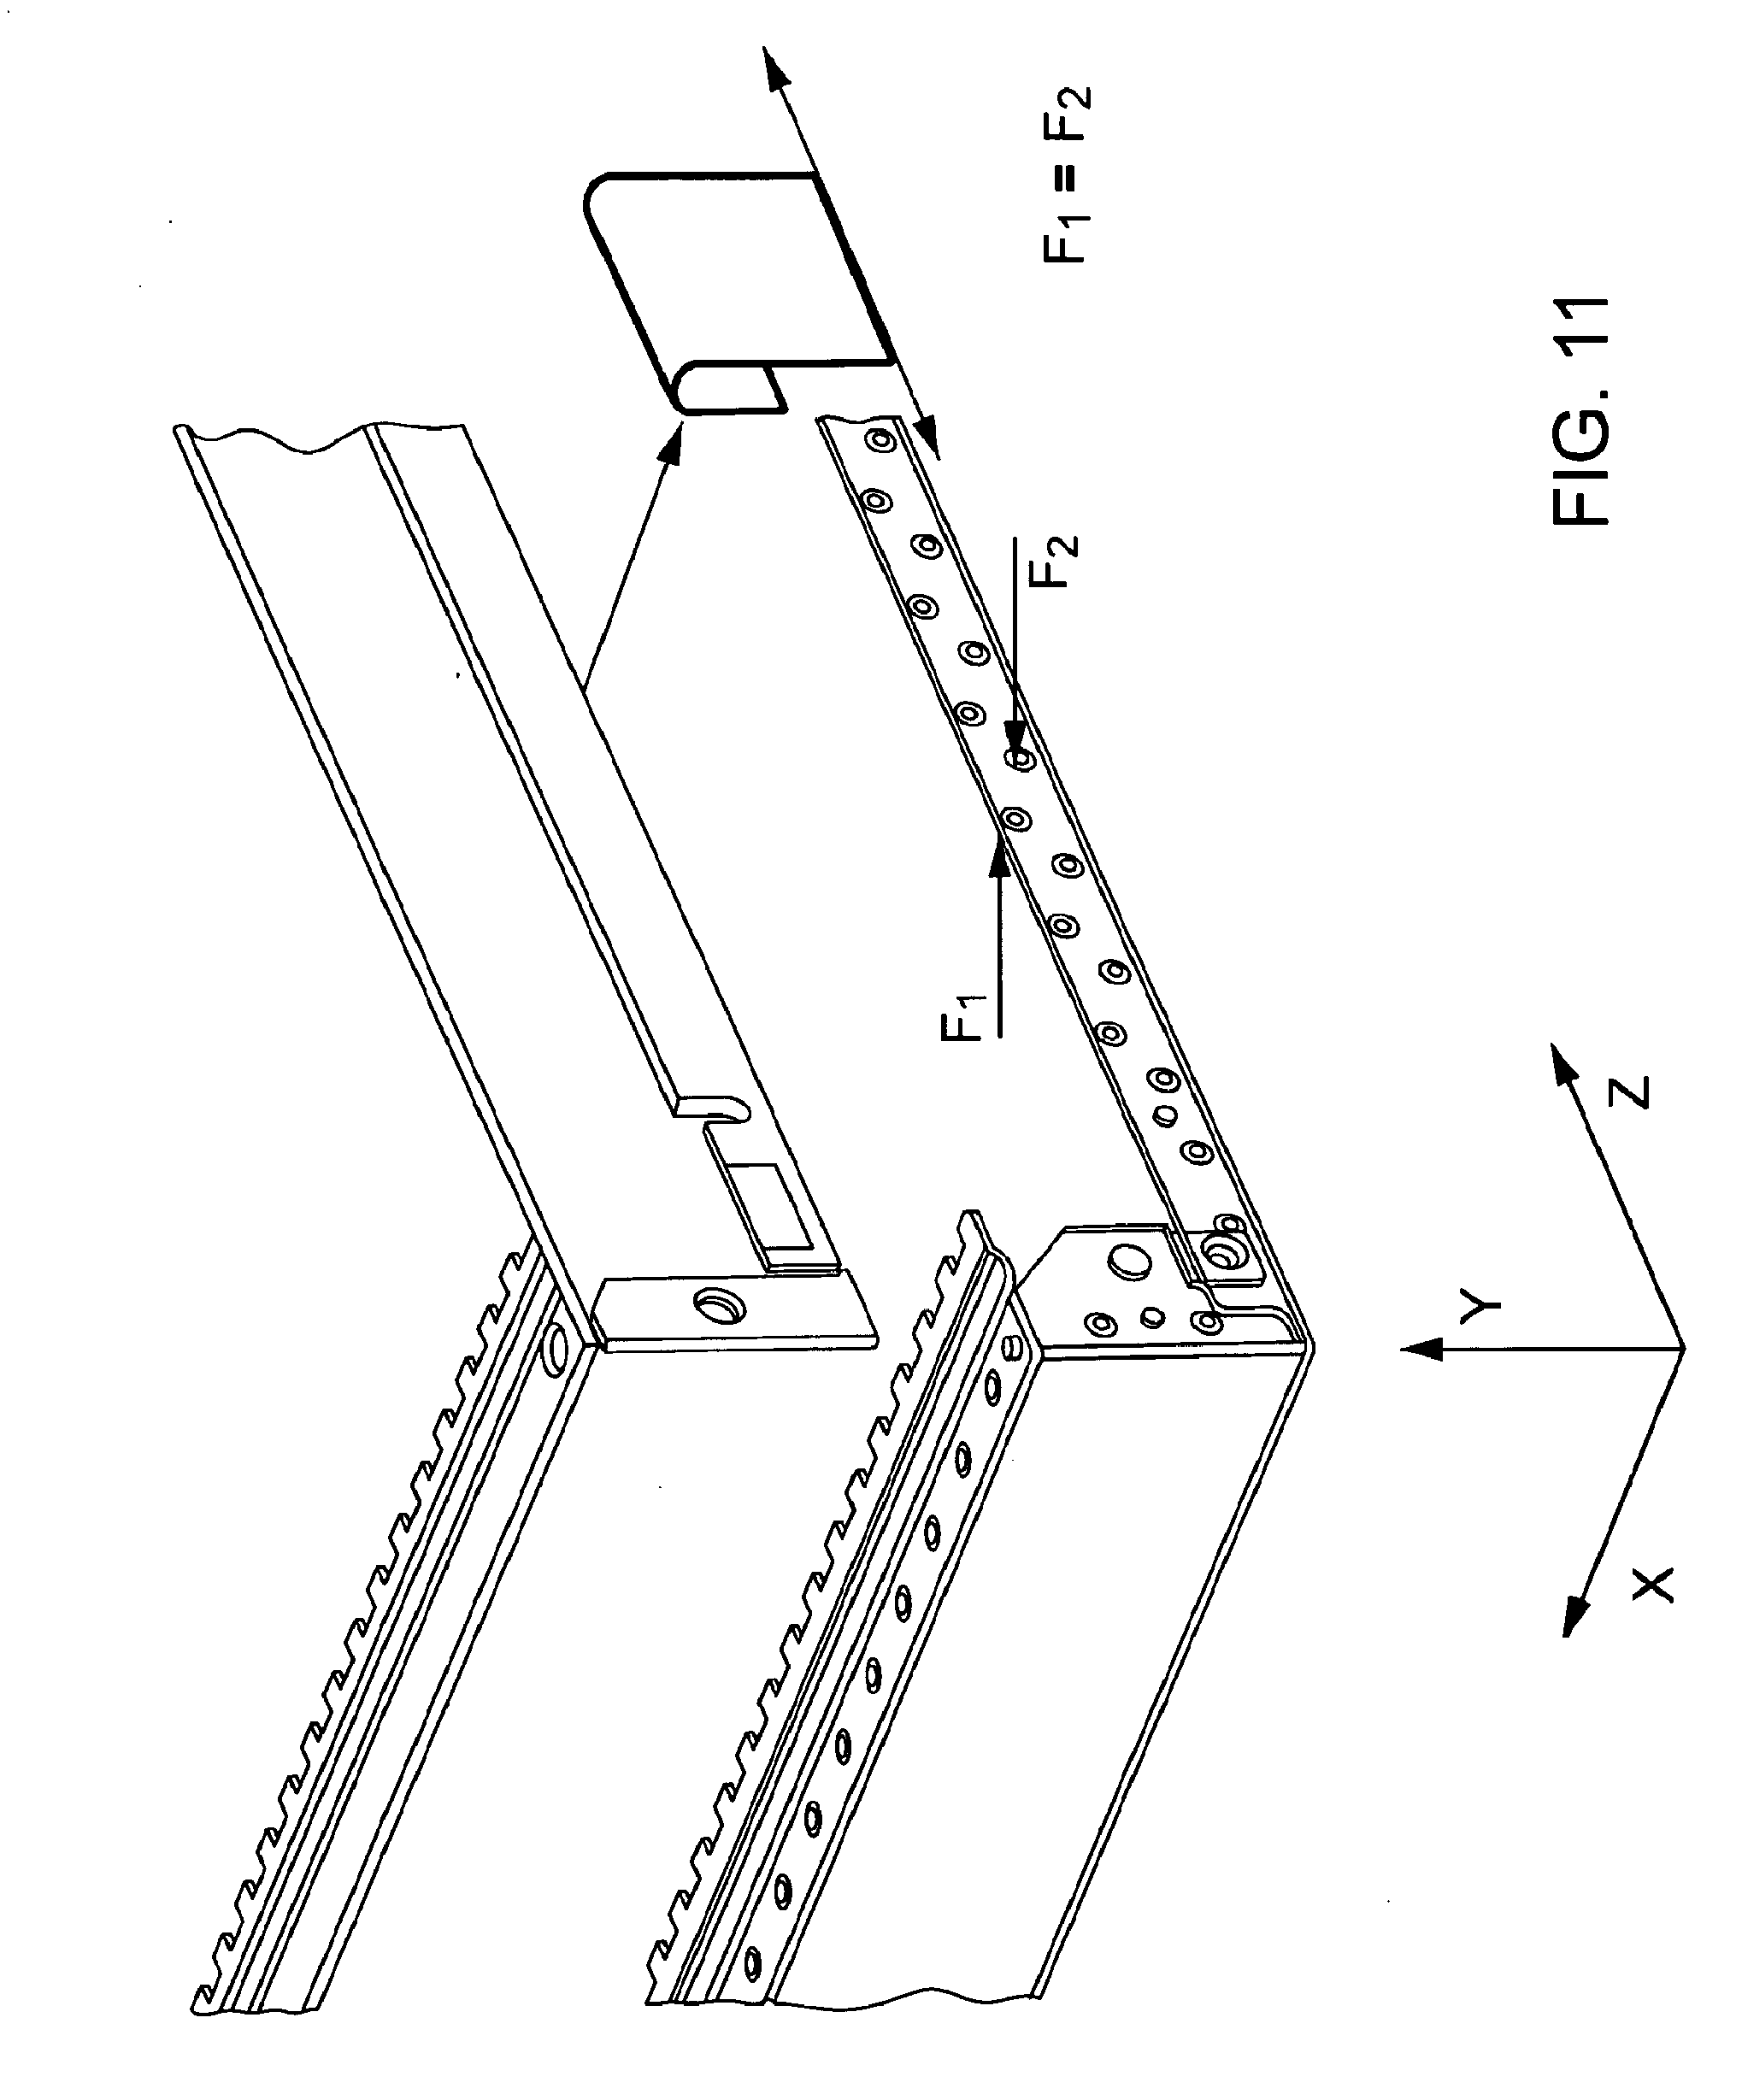 patent us20120049700 emi shielding solutions for electronics Delta Transformer Grounding patent drawing